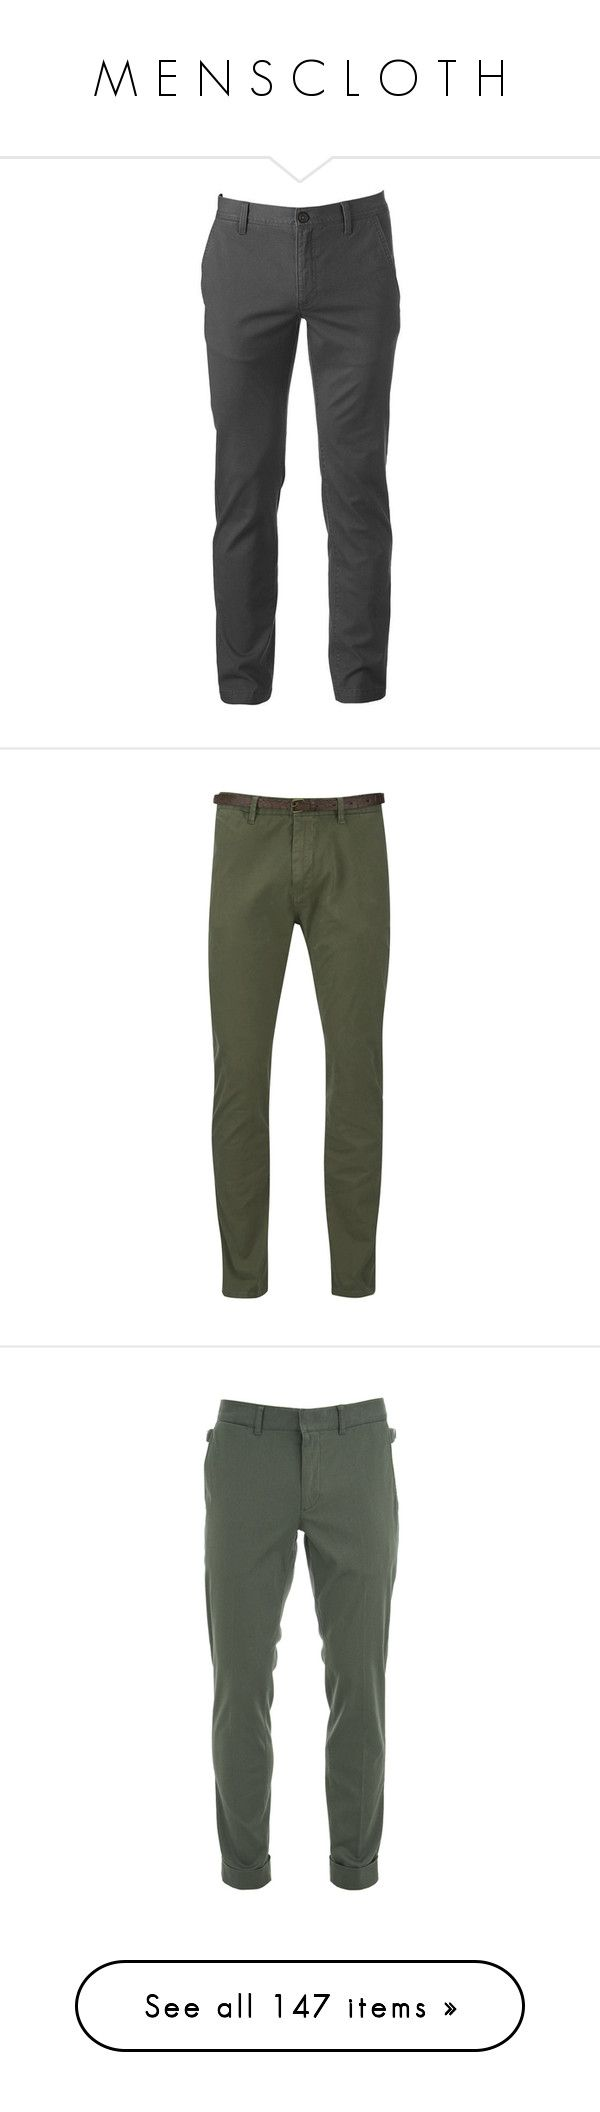 """M E N S C L O T H"" by southerncomfort ❤ liked on Polyvore featuring men's fashion, men's clothing, men's pants, men's casual pants, grey, mens chino pants, mens zip off pants, mens grey dress pants, mens slim fit chino pants and mens gray pants"